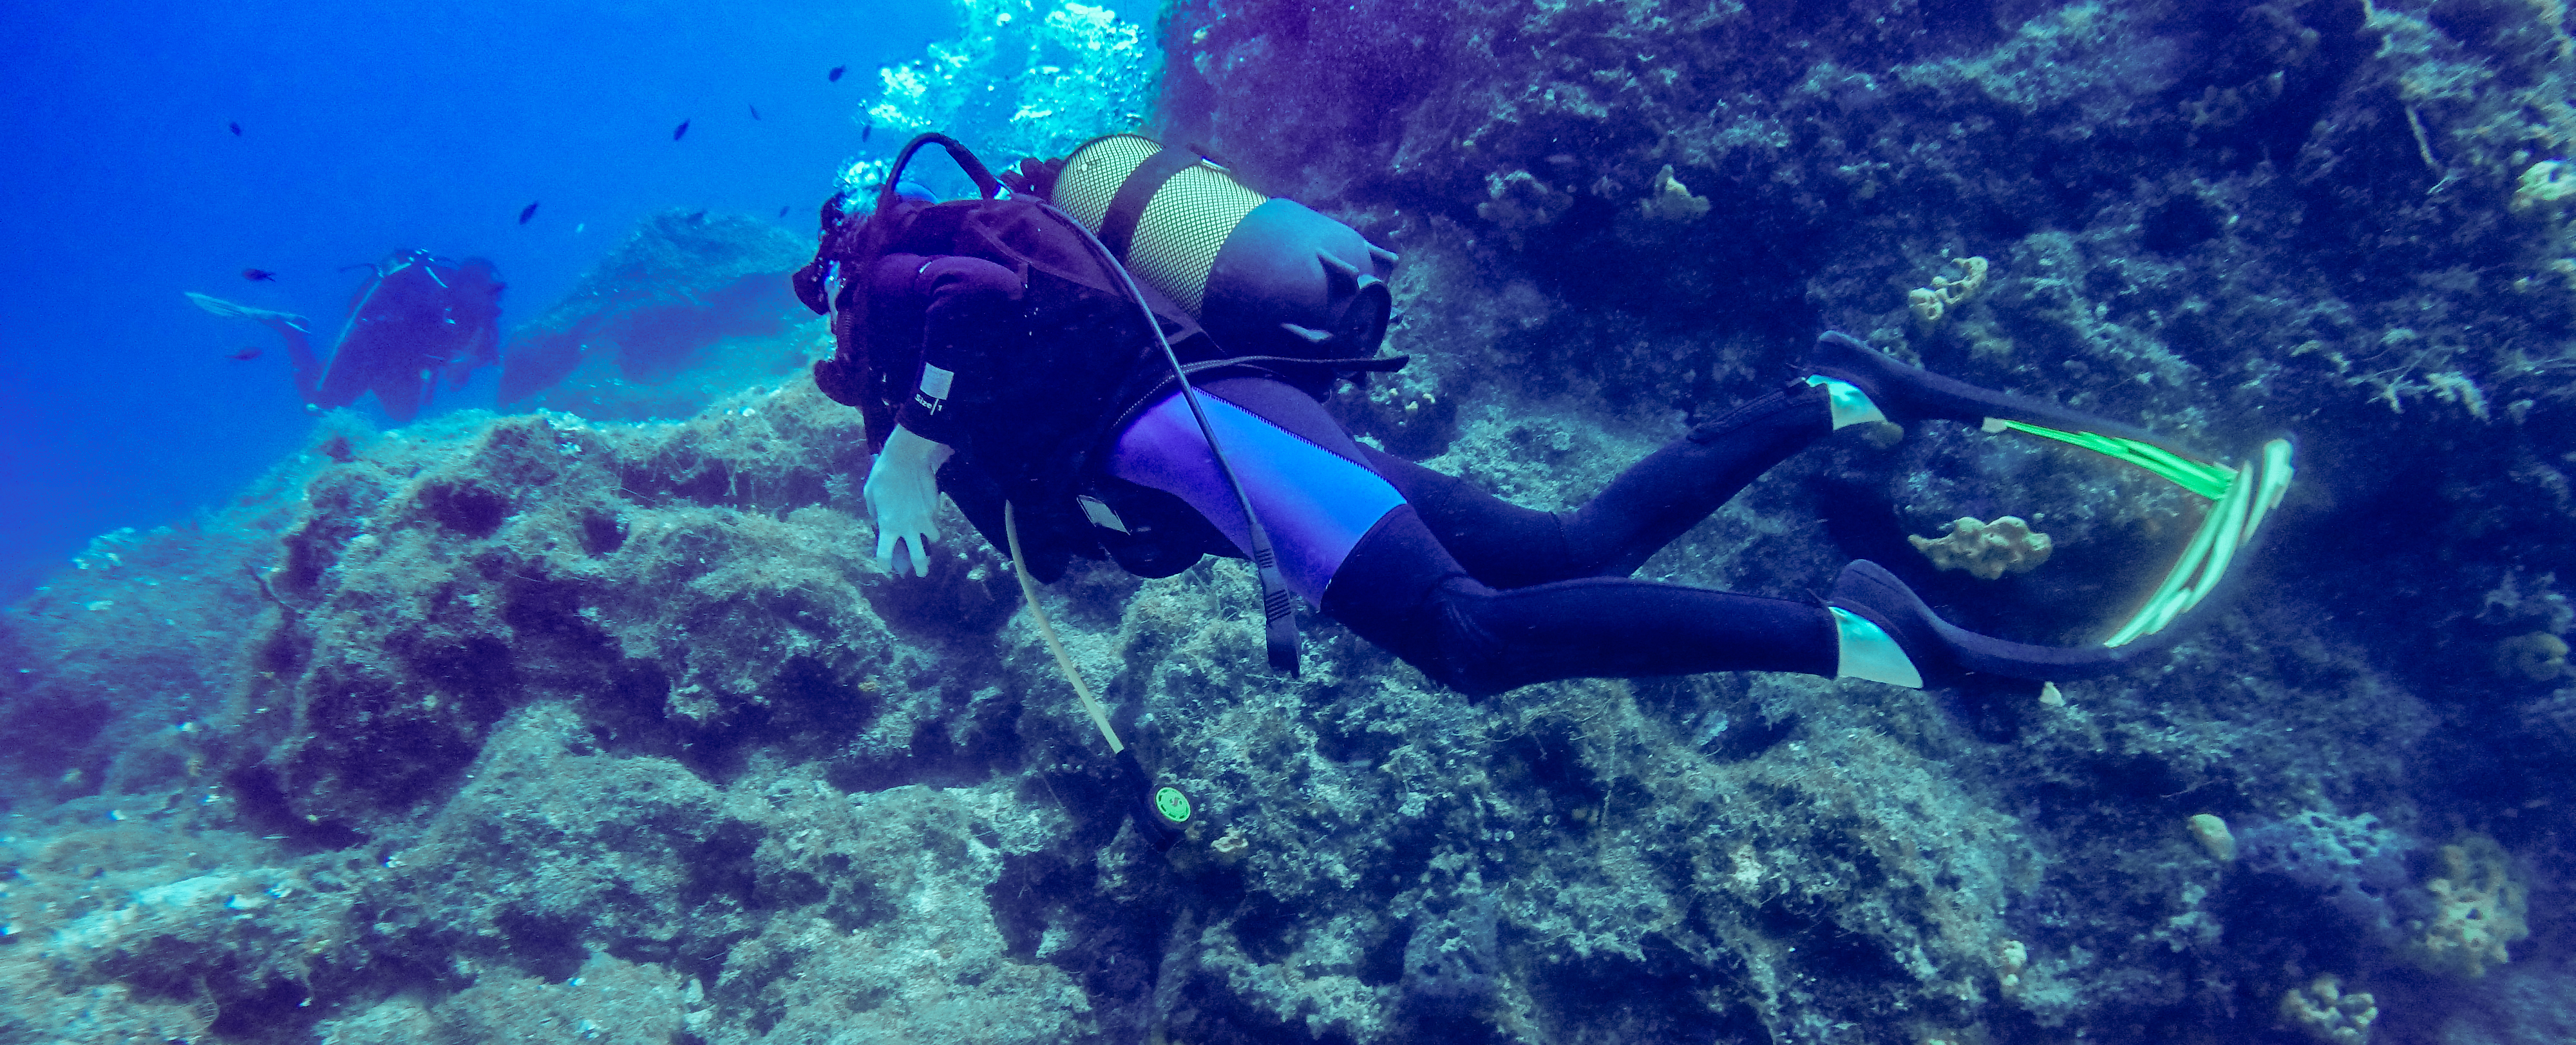 scuba diving You don't need certification for this incredible scuba diving adventure.